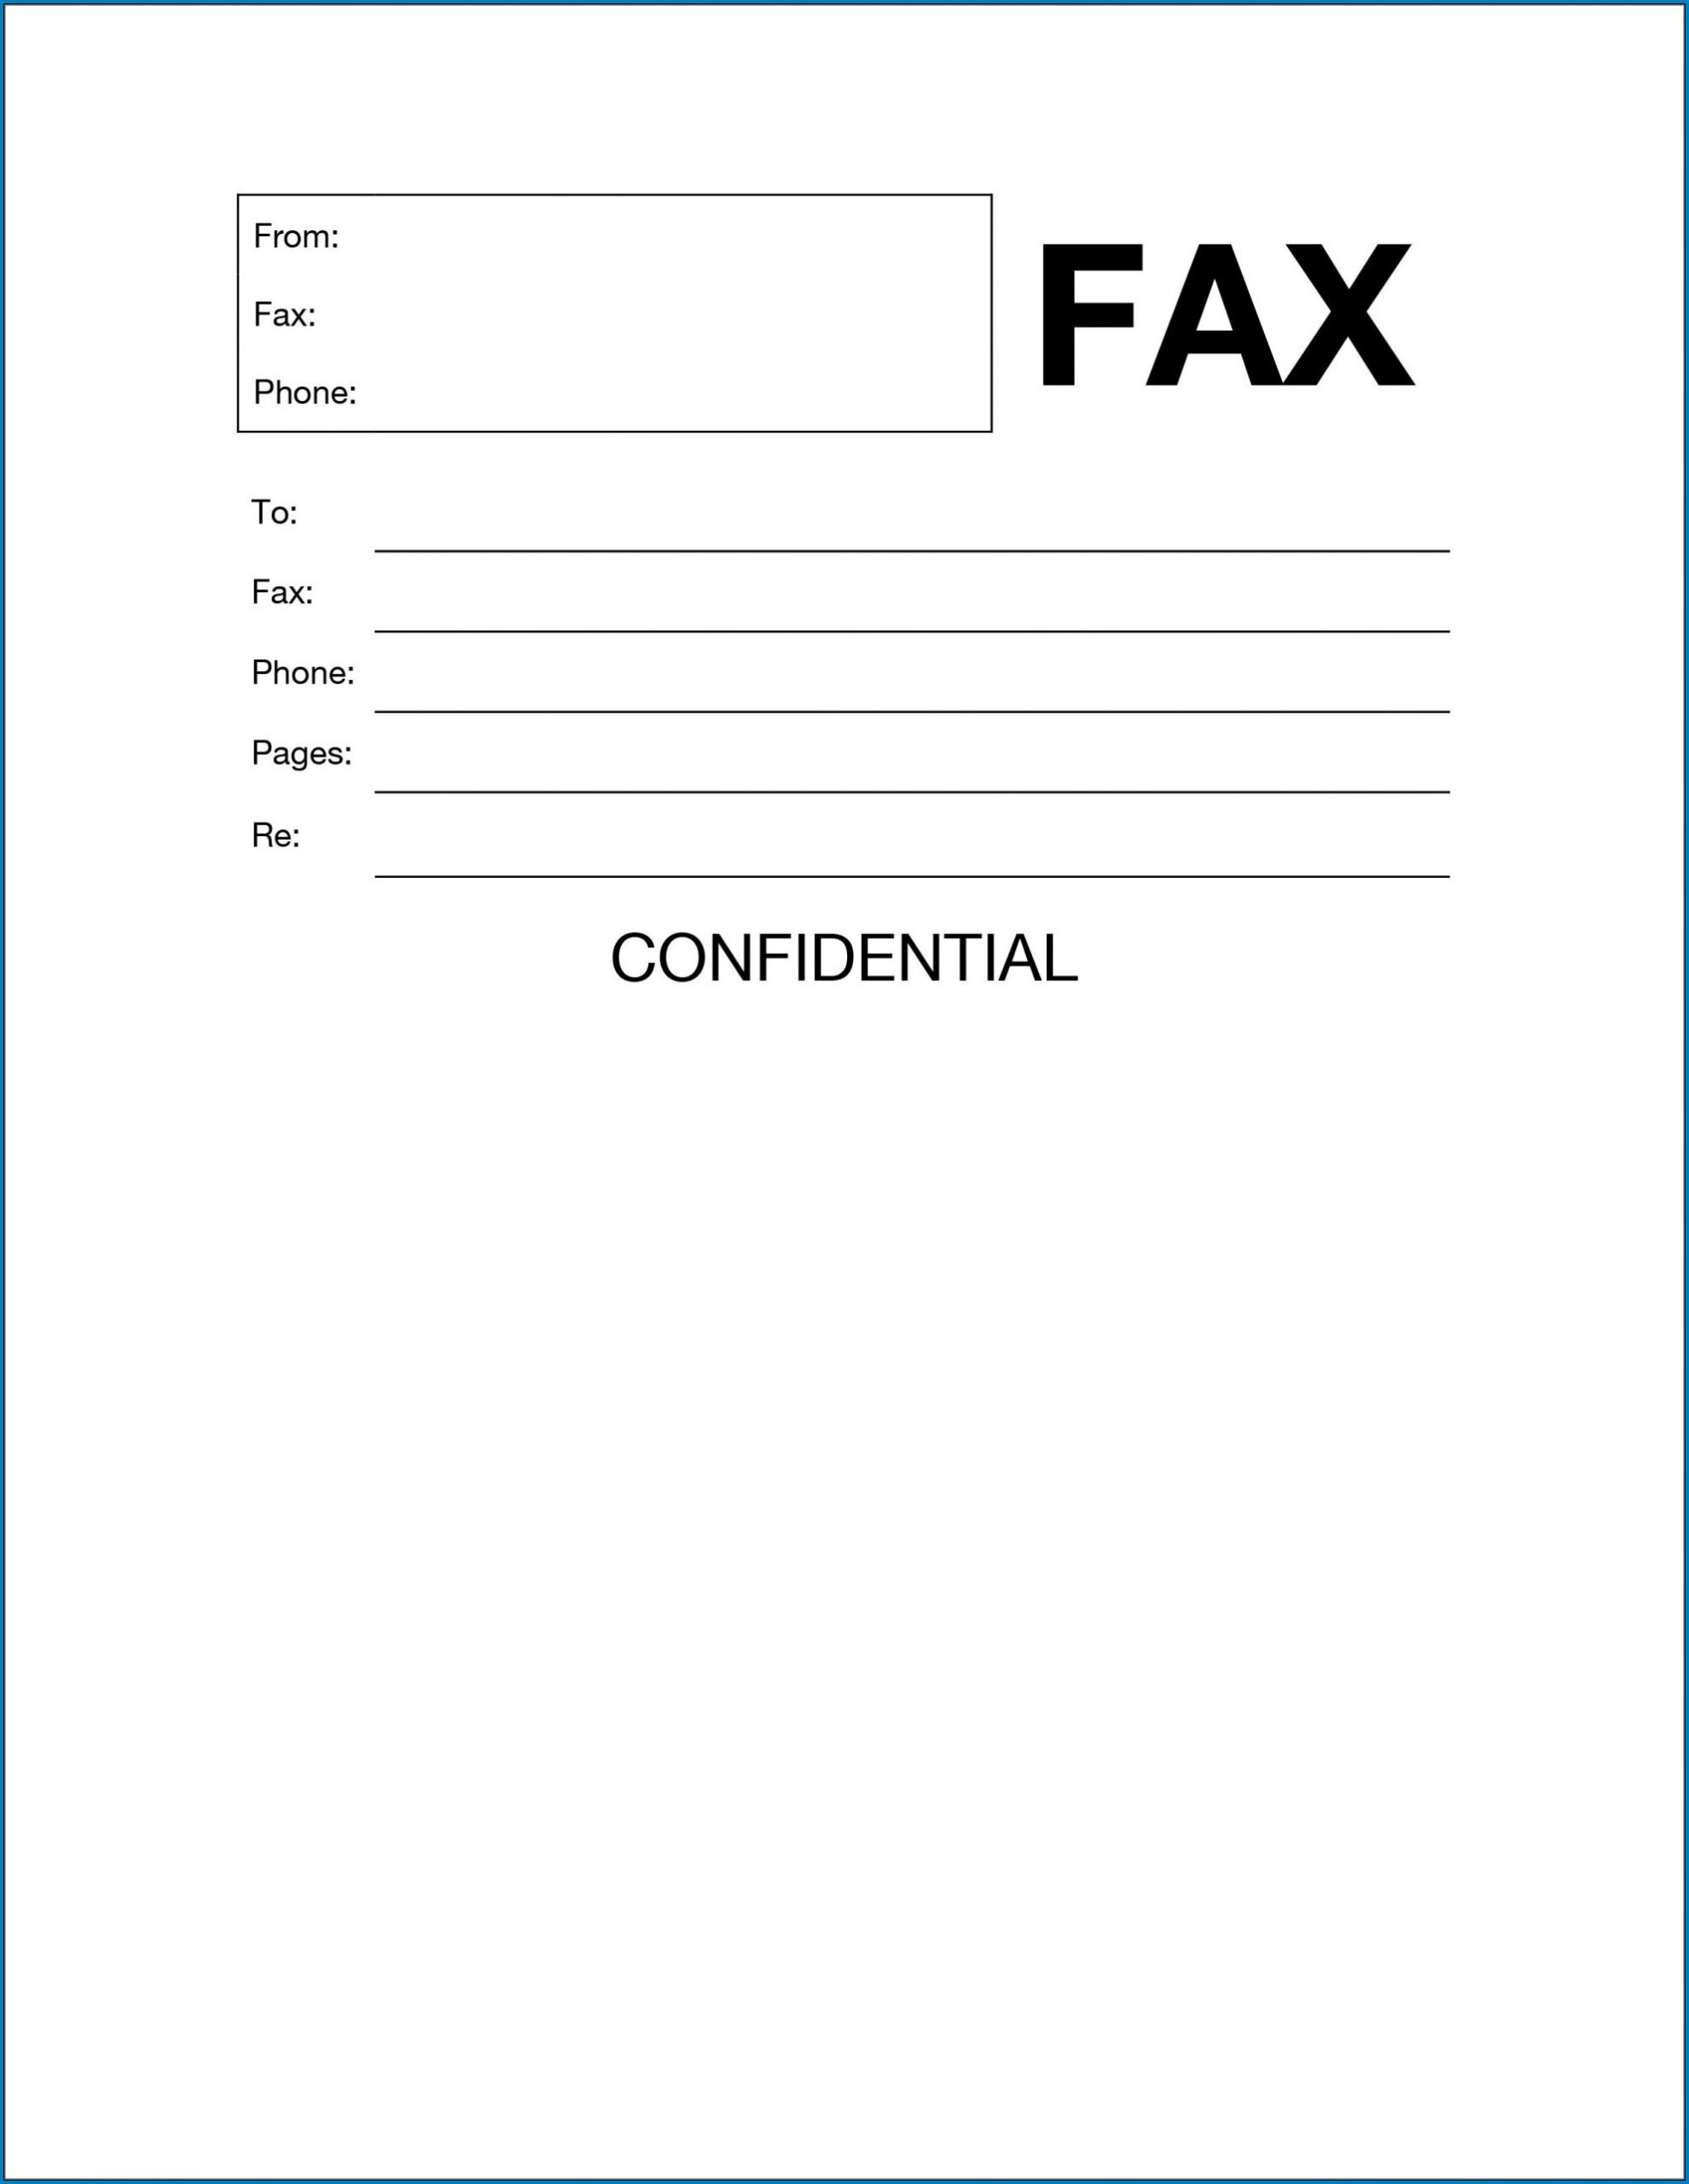 Fax Cover Sheet Template Word Example